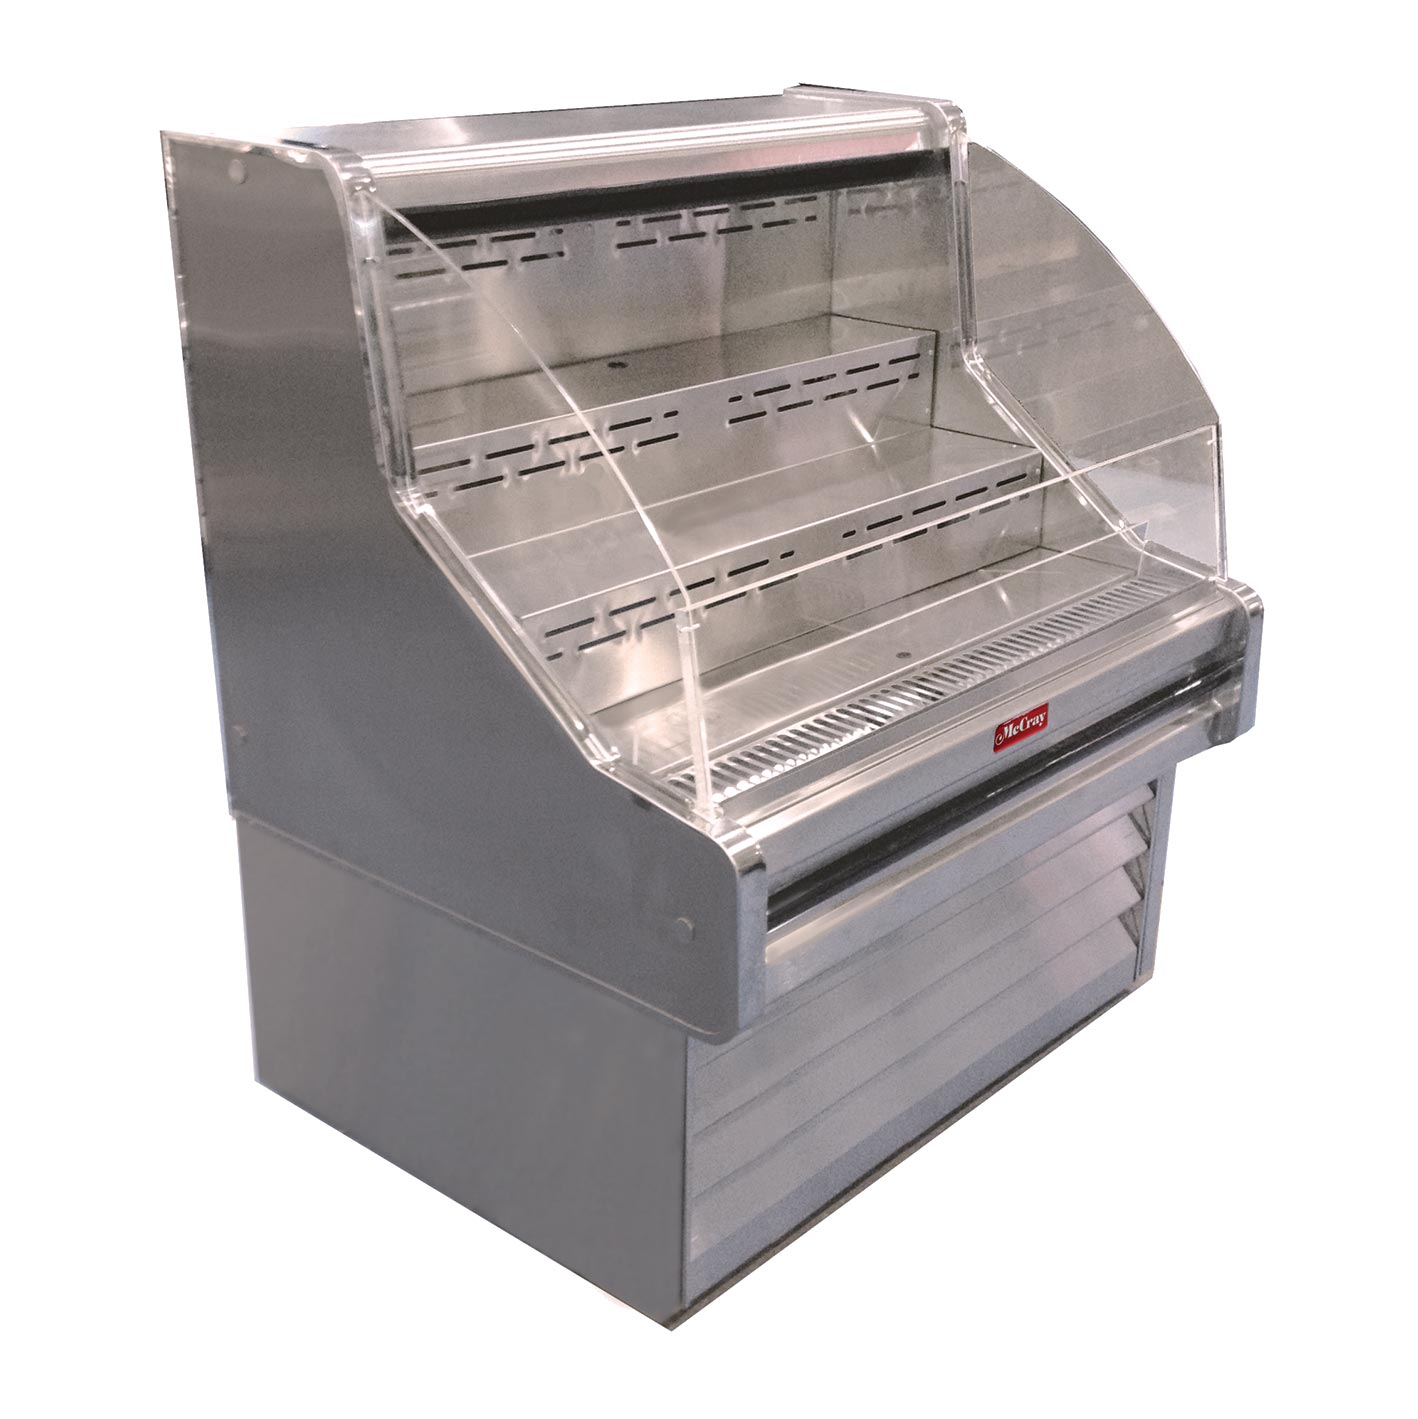 Howard-McCray R-OS35E-6C-B-LED merchandiser, open refrigerated display